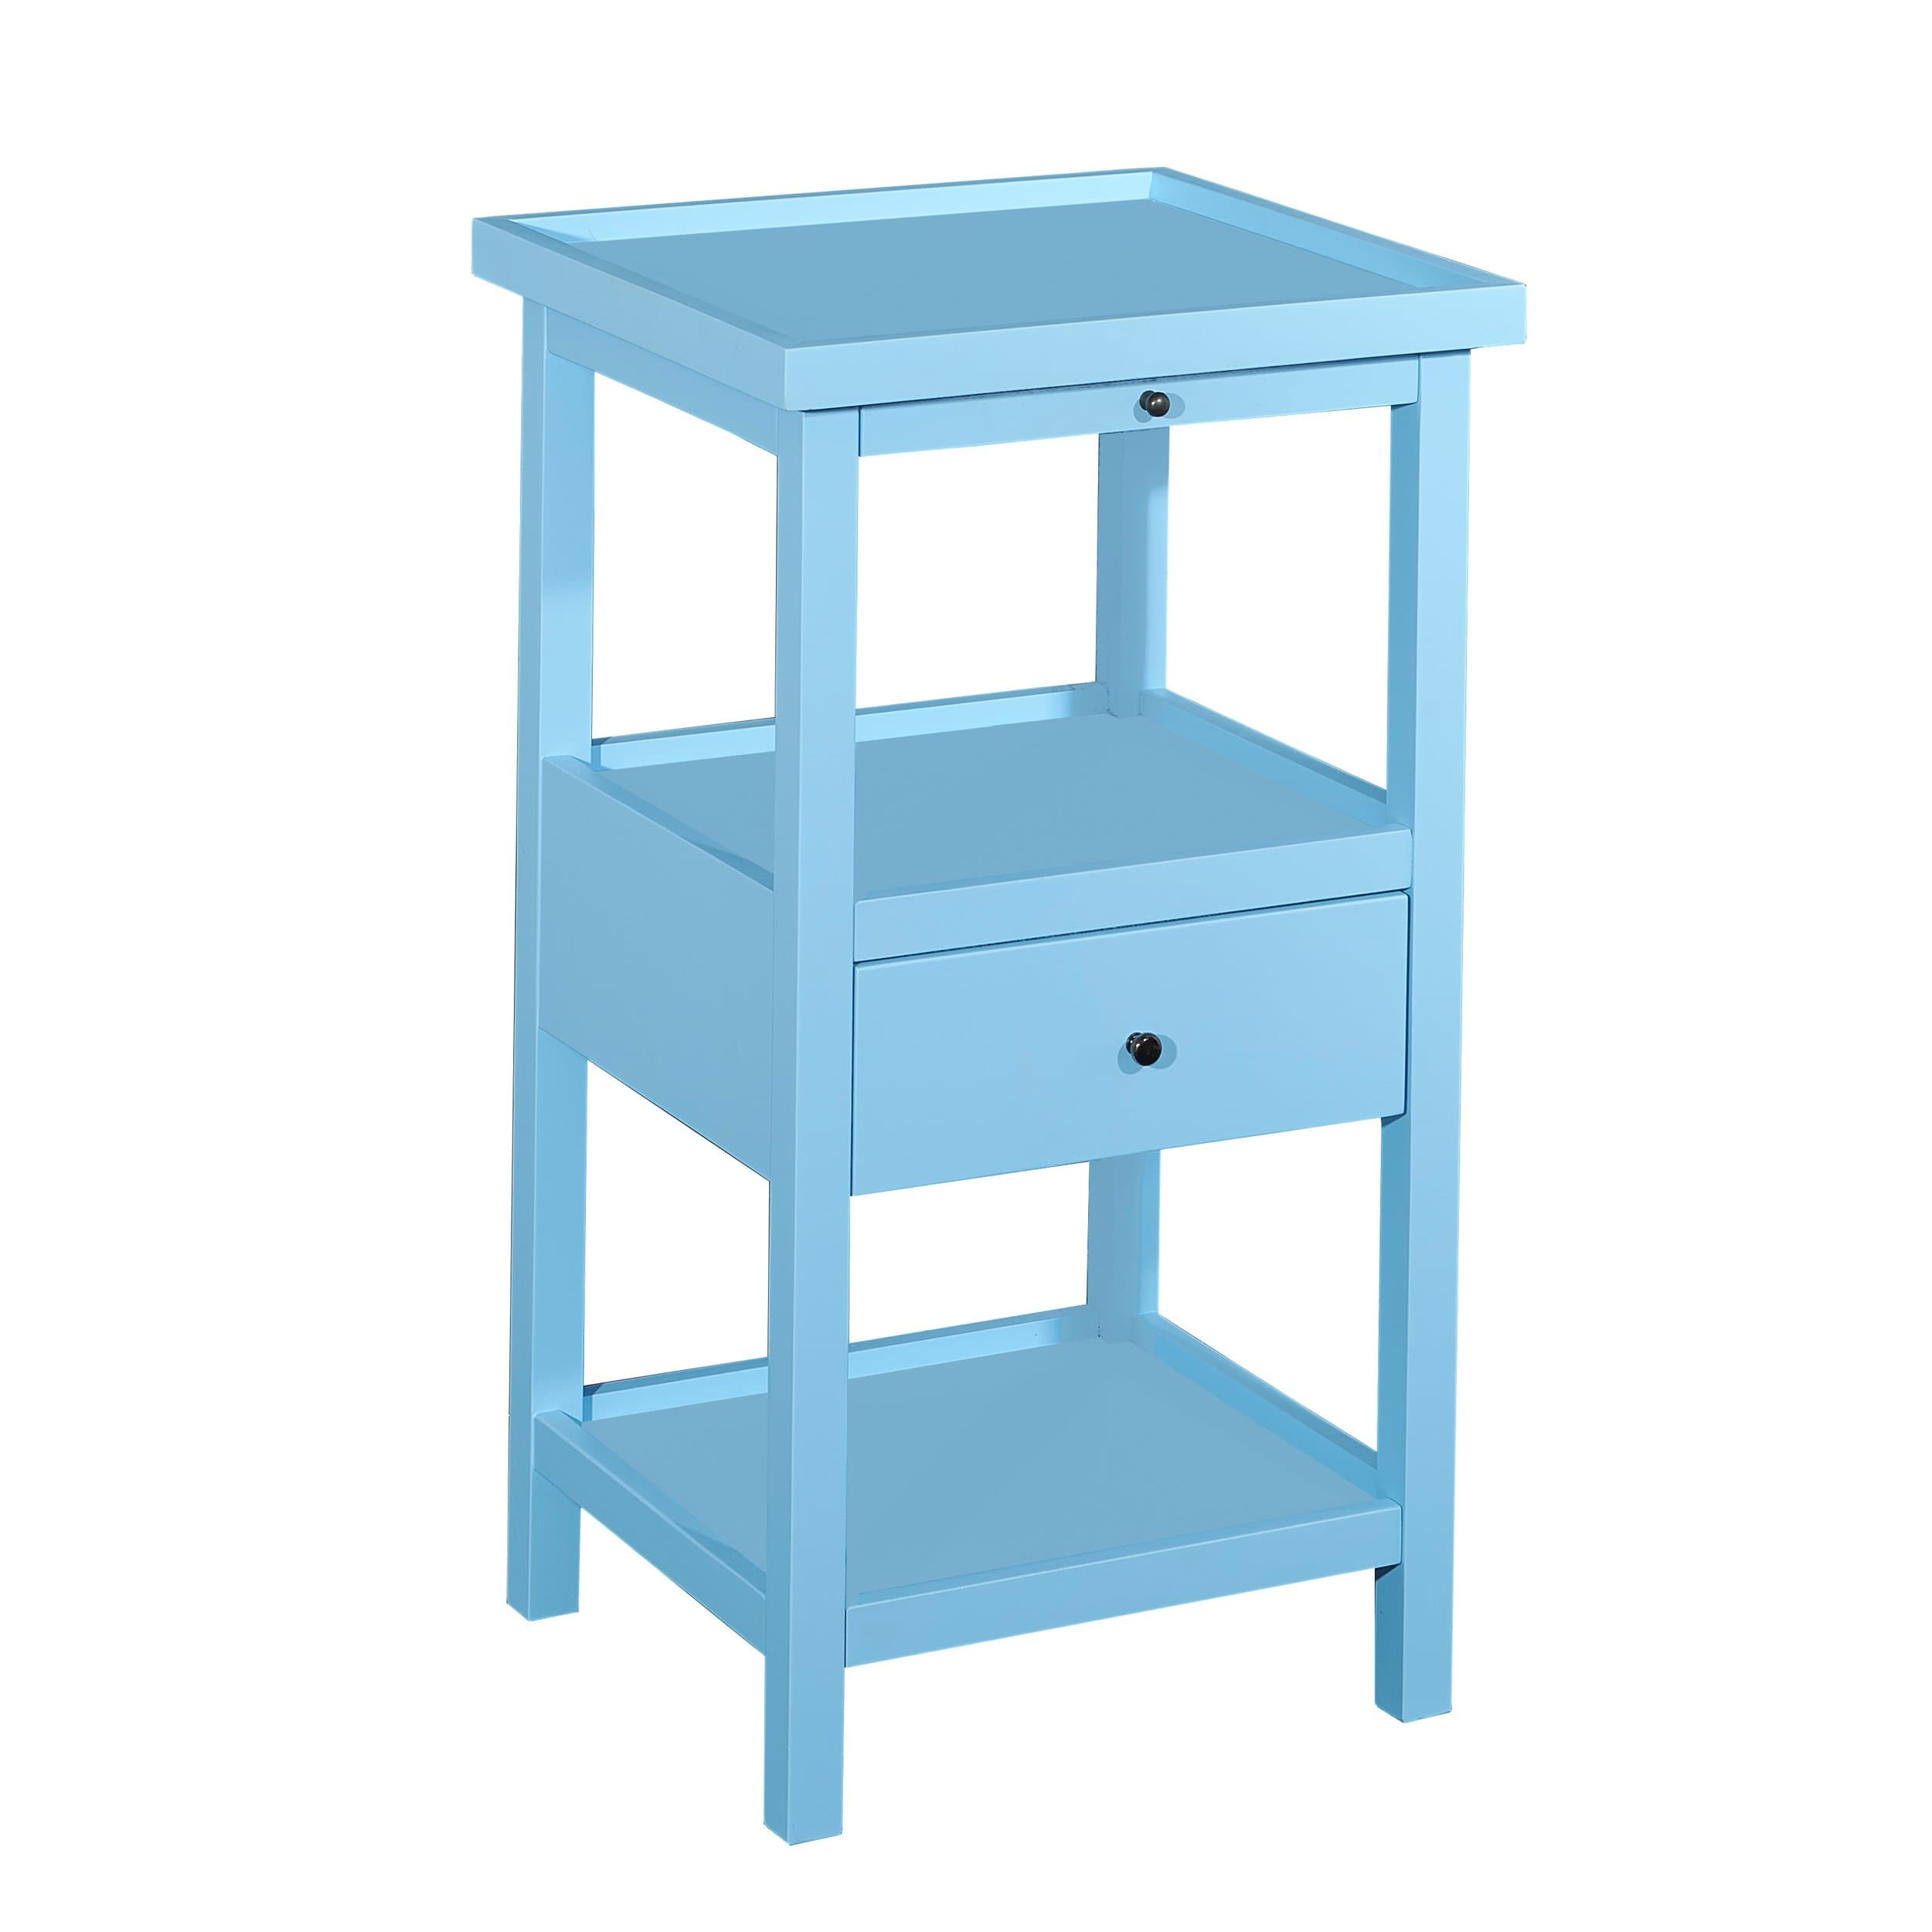 powell palmer ocean blue wood accent table with shelf free lighting seattle shipping today metal patio and chairs marble end tables pier one runner lucite nesting target ethan